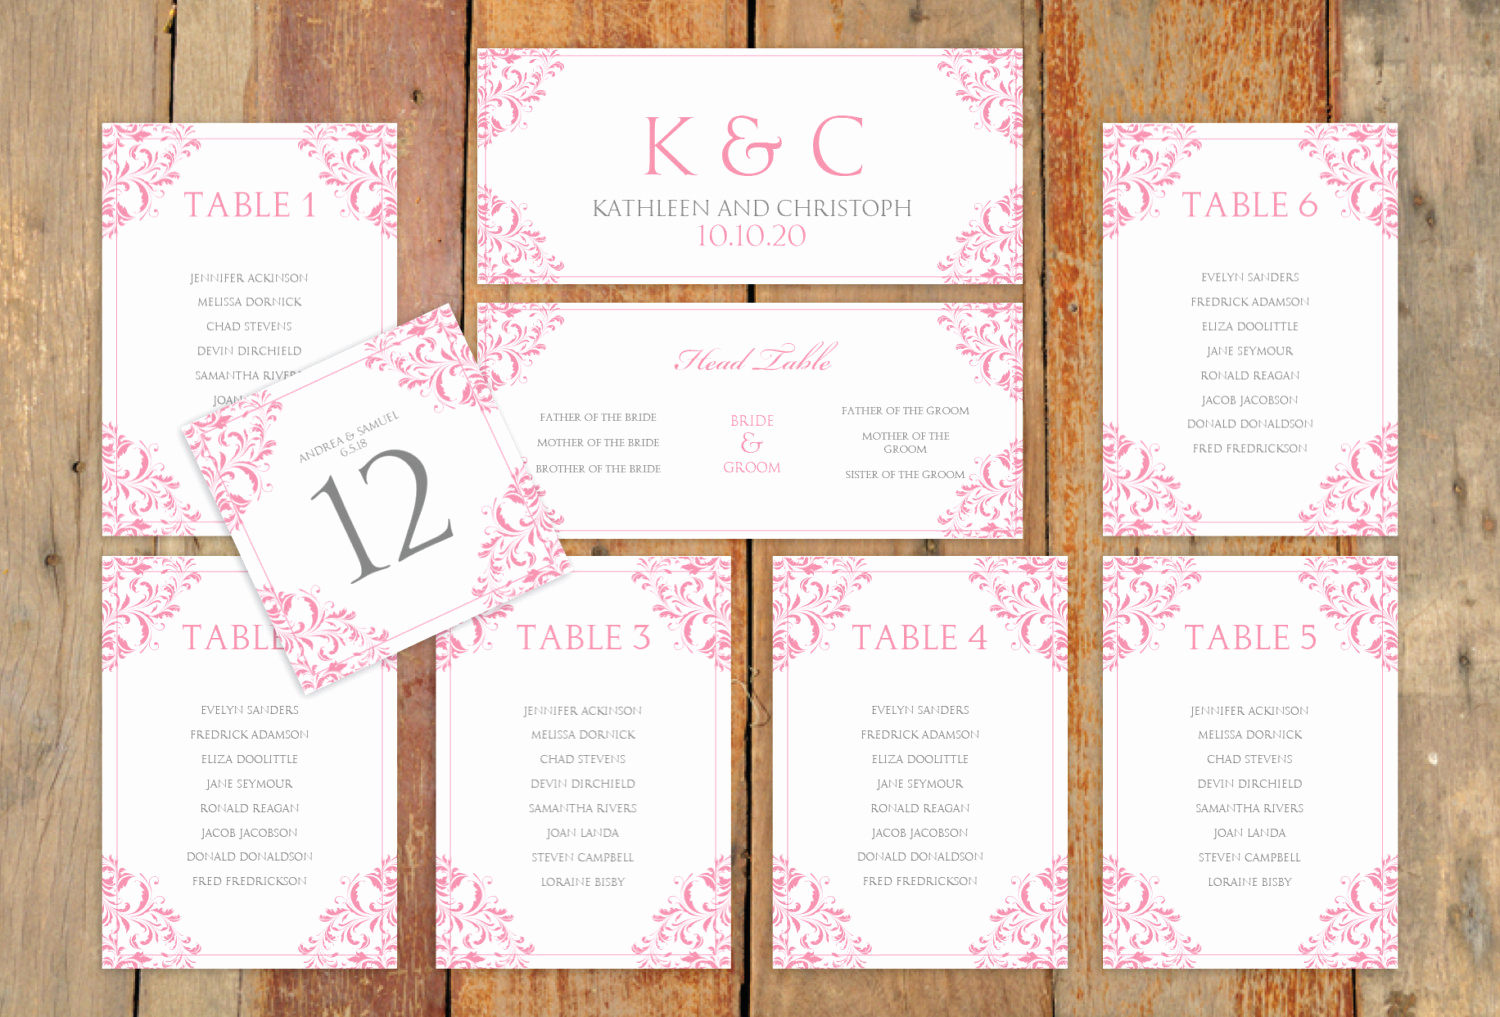 Seating Chart Template Wedding Luxury Wedding Seating Chart Template Download by Karmakweddings